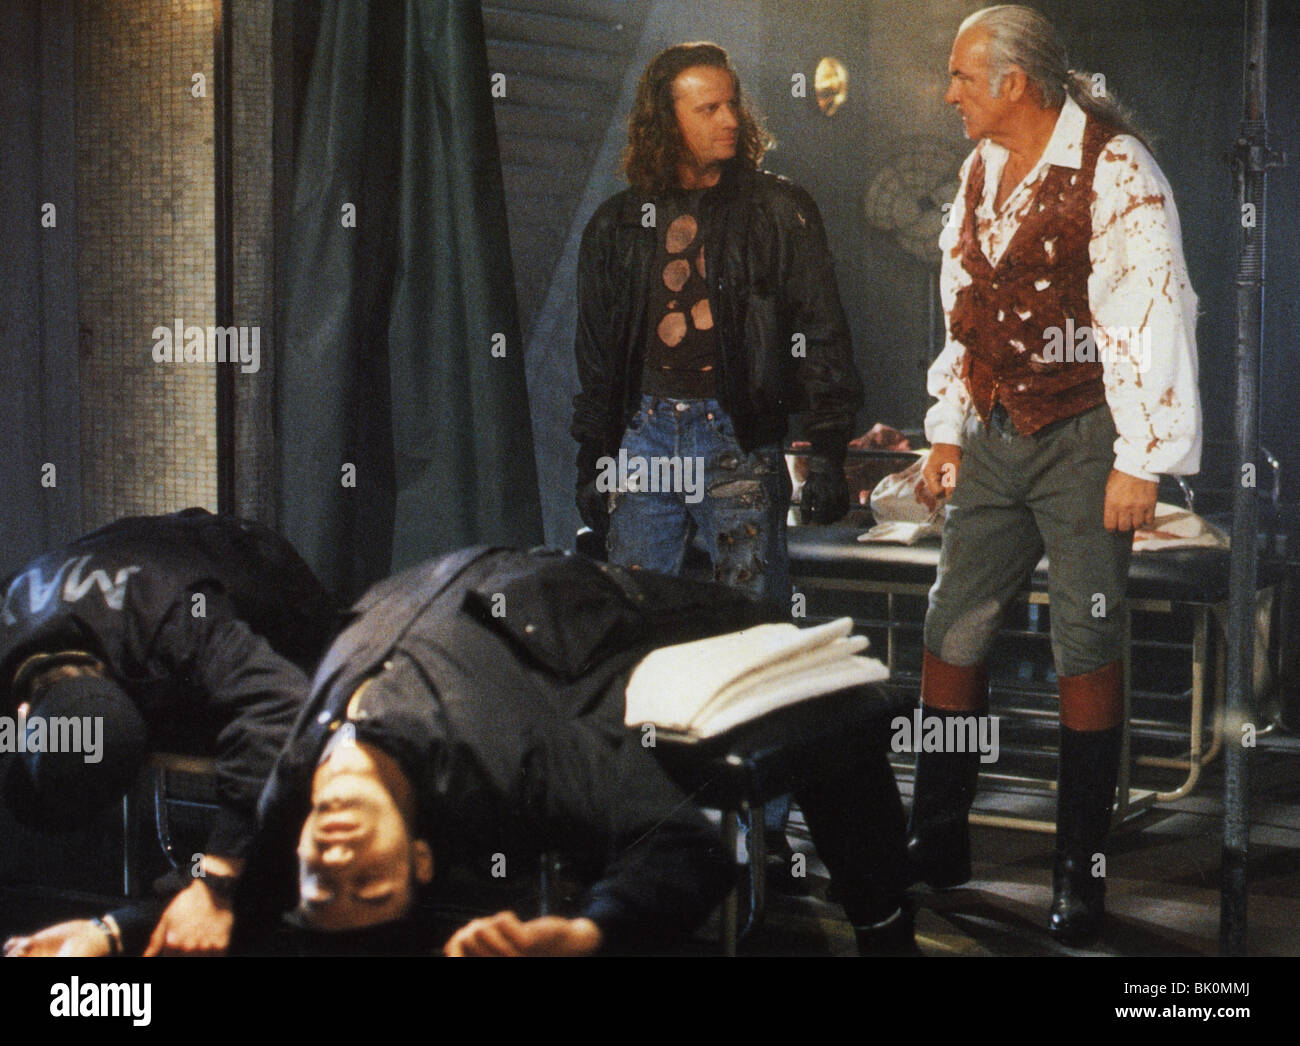 HIGHLANDER II: THE QUICKENING - 1990 Entertianmnet film with Sean Connery at right and Christopher Lambert - Stock Image